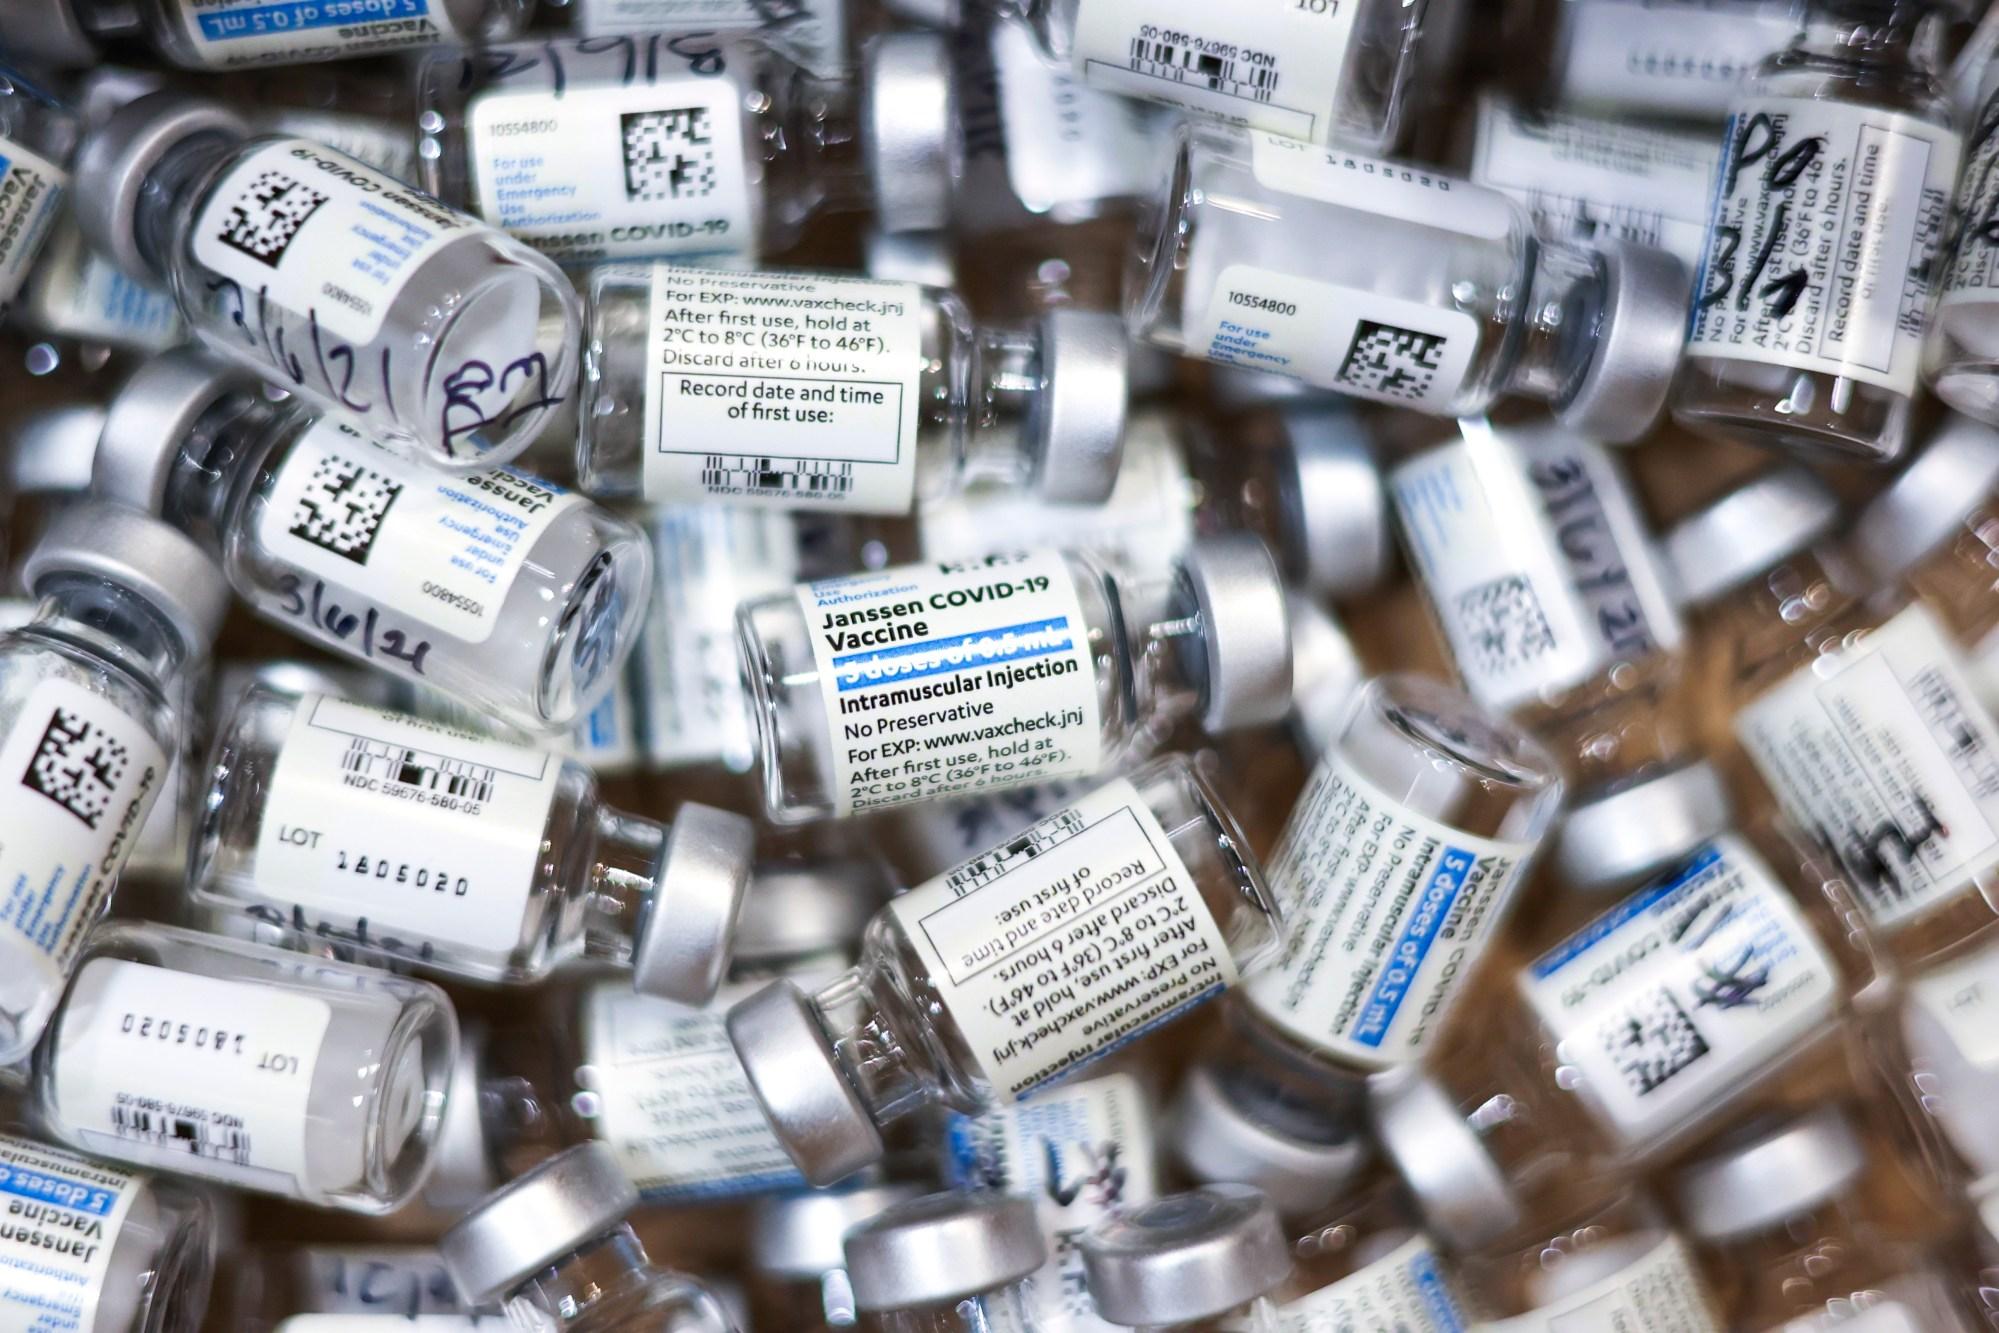 Used vials of the Johnson & Johnson COVID-19 vaccine sit in a box at an event put on by the Thornton Fire Department on March 6, 2021 in Thornton, Colorado. (Michael Ciaglo/Getty Images)